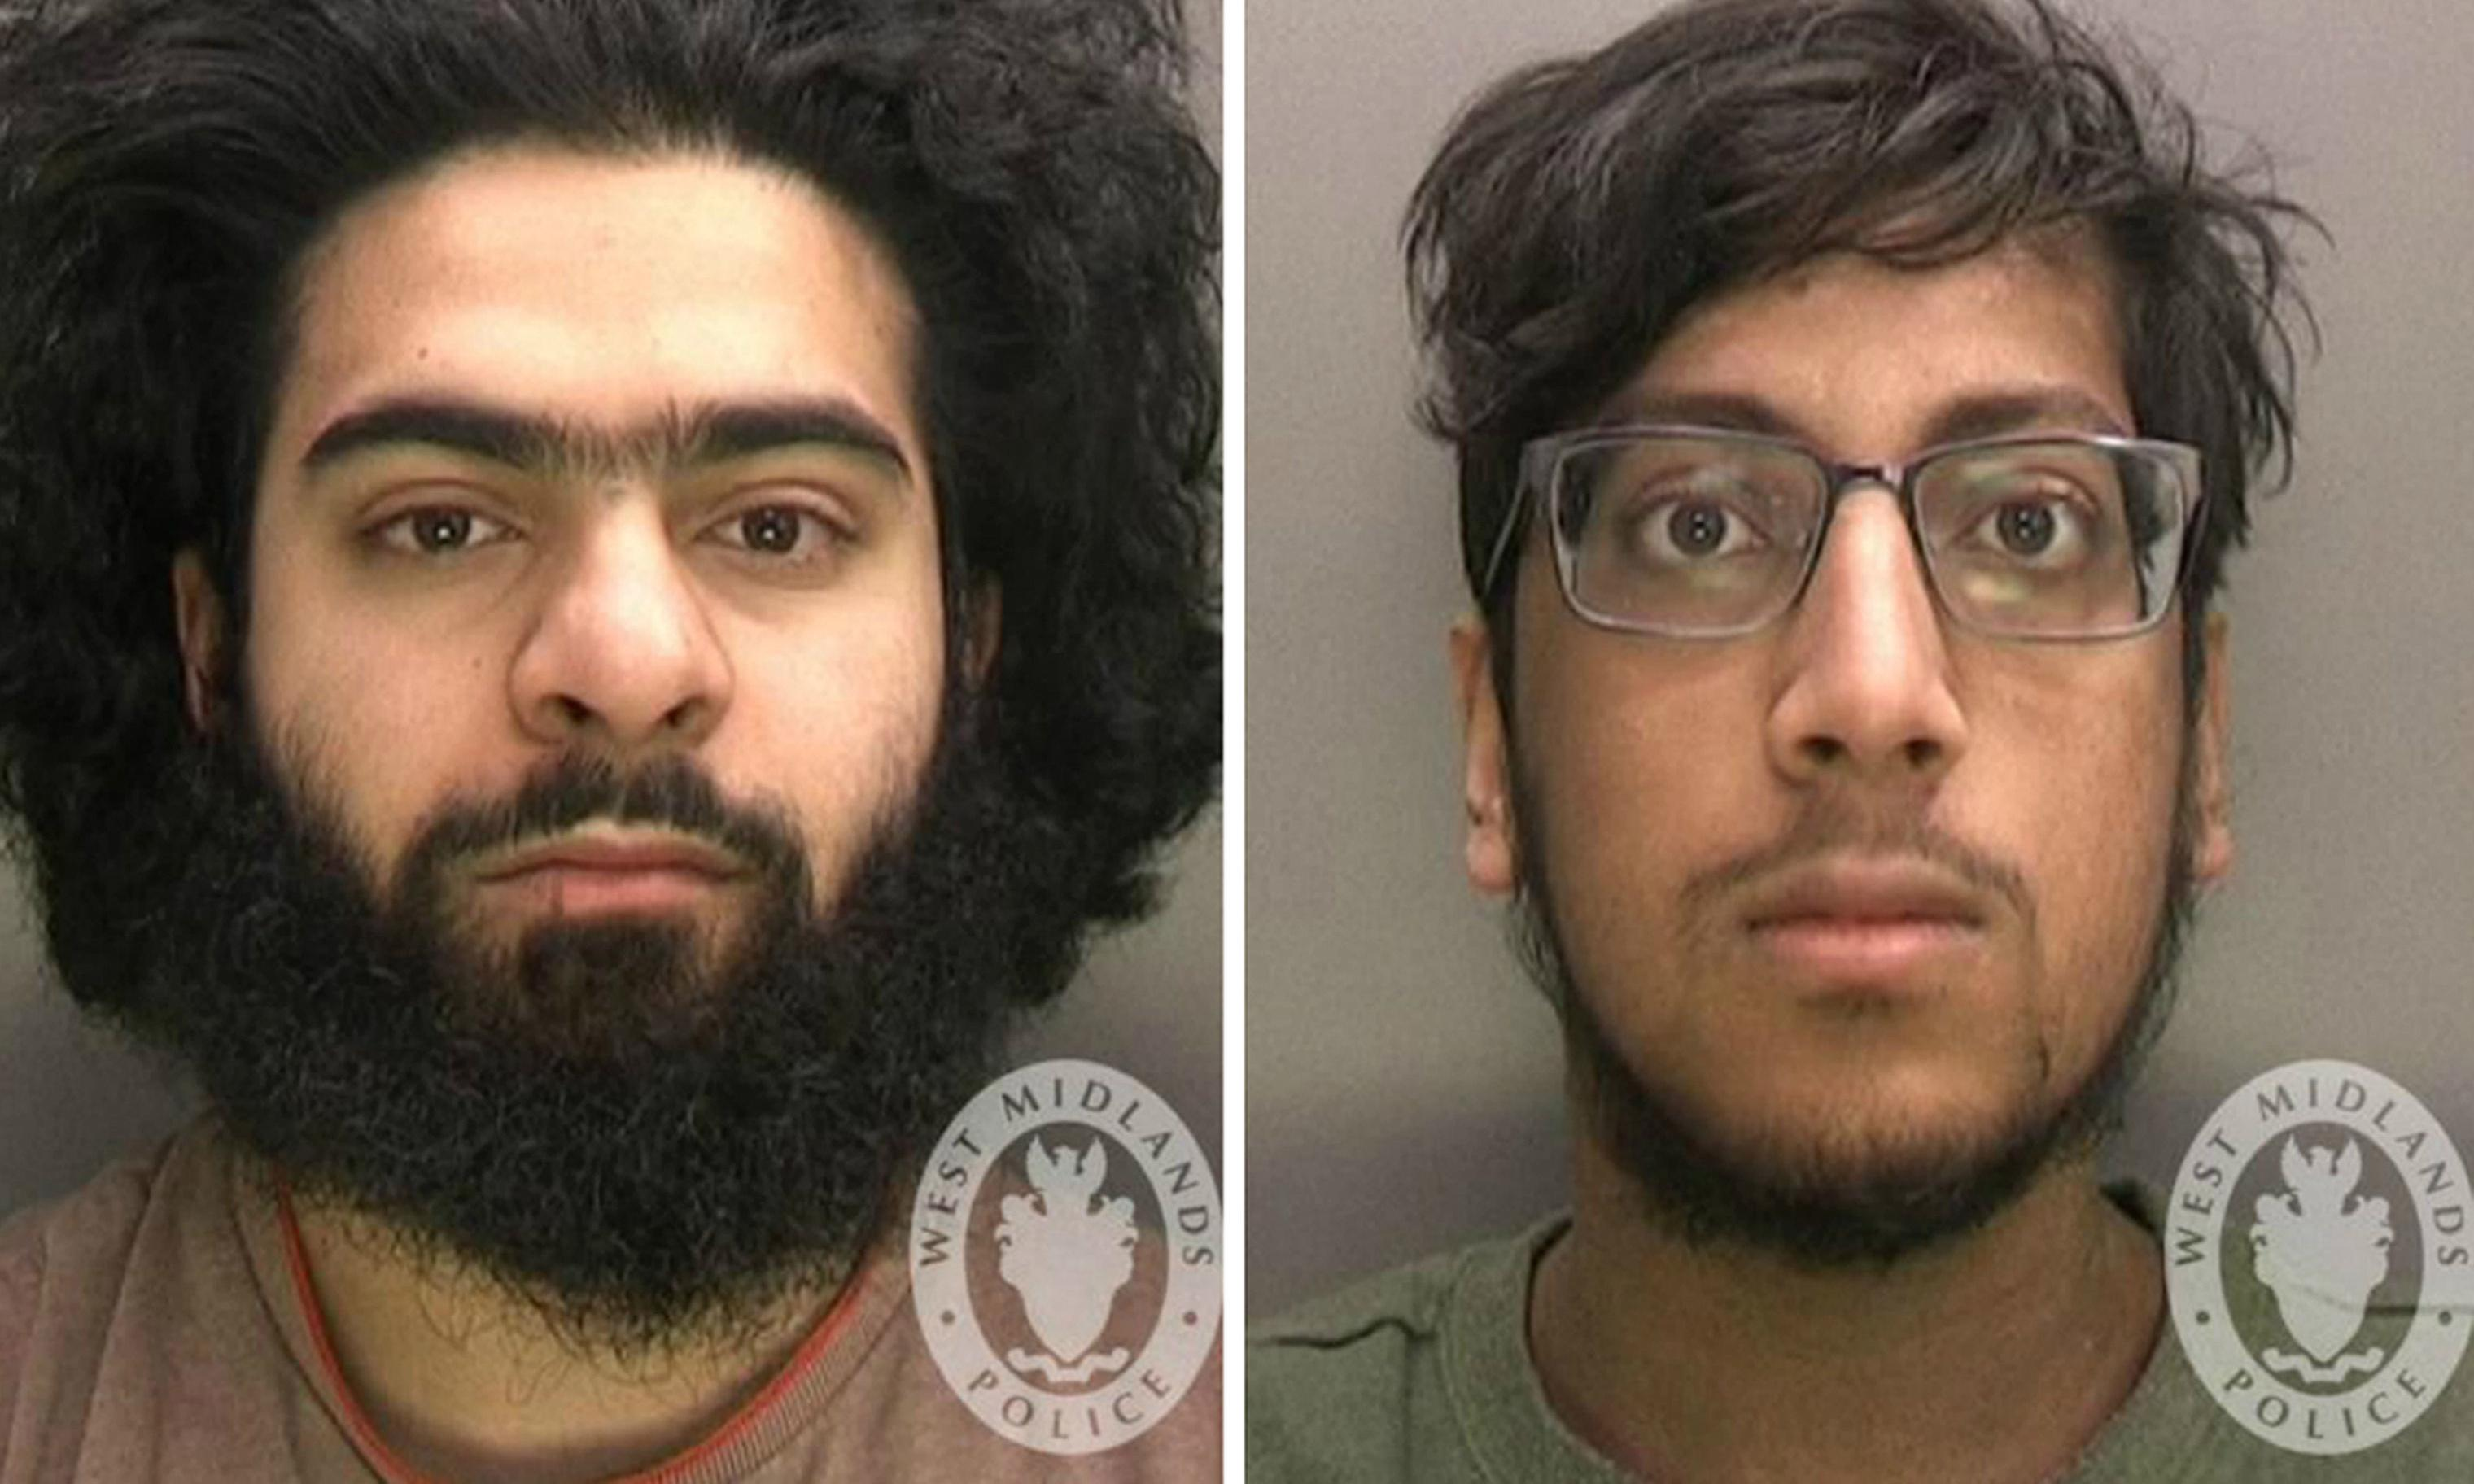 UK pair who planned Syria journey on TripAdvisor jailed